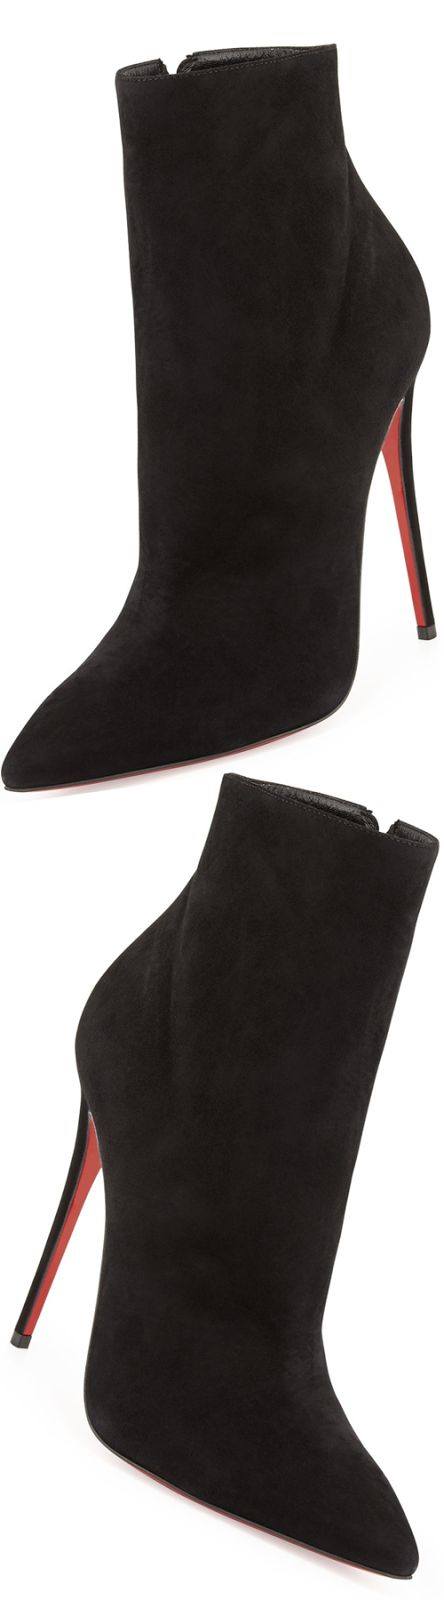 ec83c9b31208 red christian louboutins buy black shoes with red soles